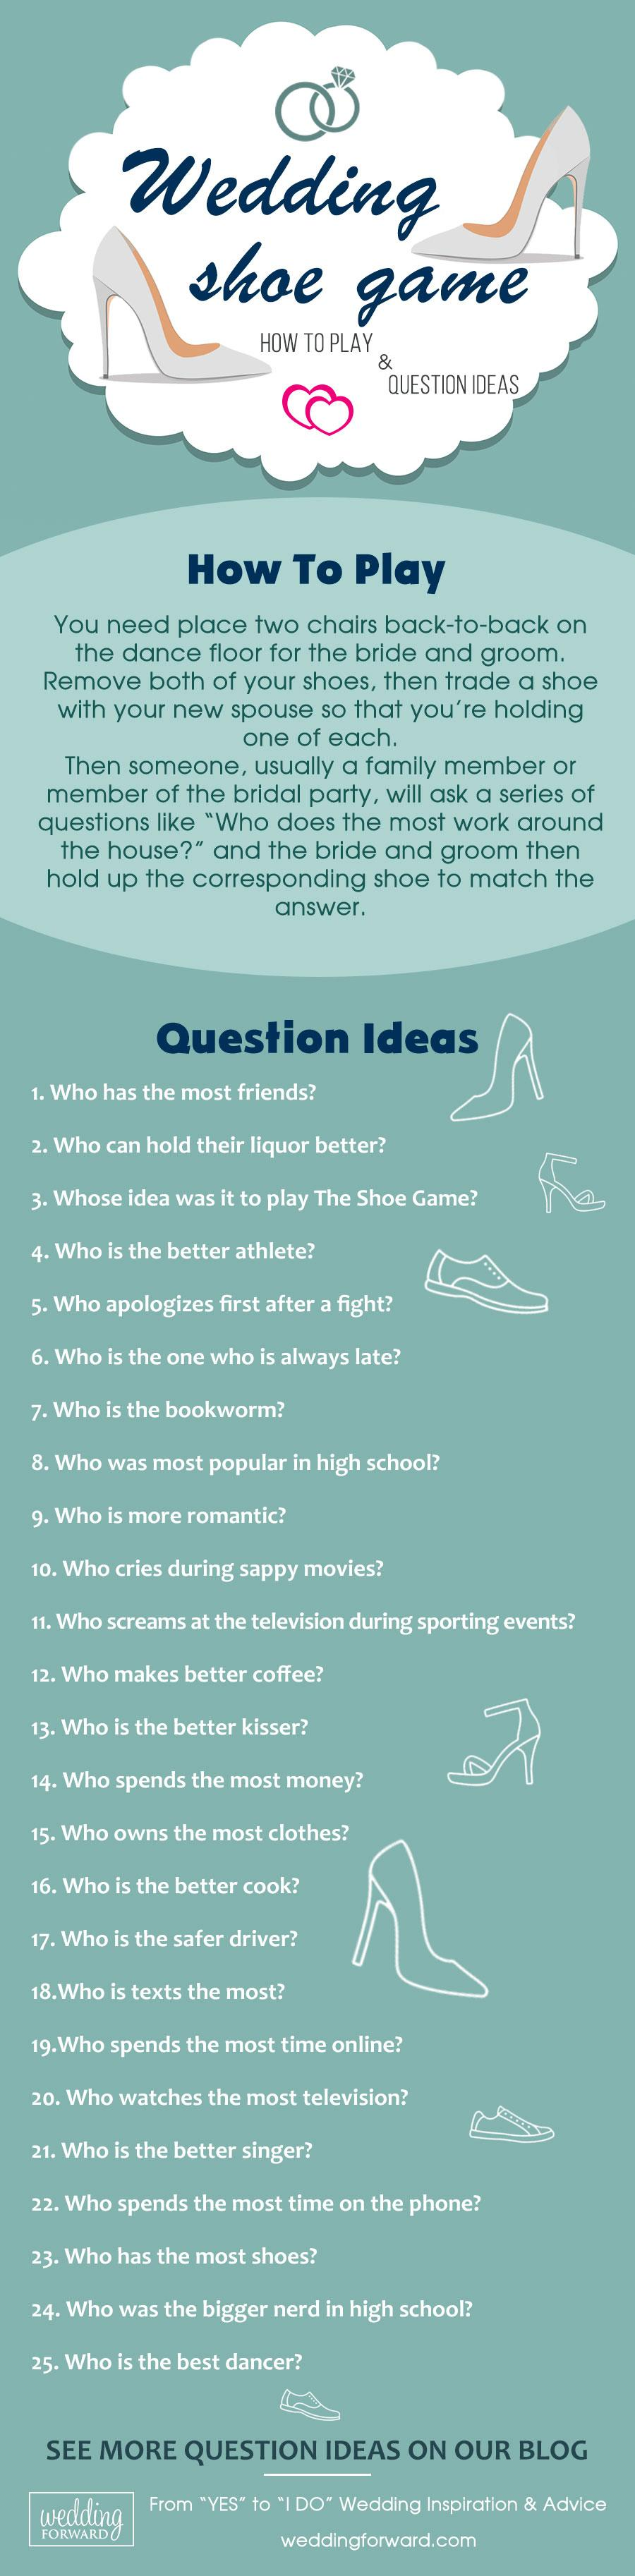 wedding entertainment infographics how to play shoe game question ideas